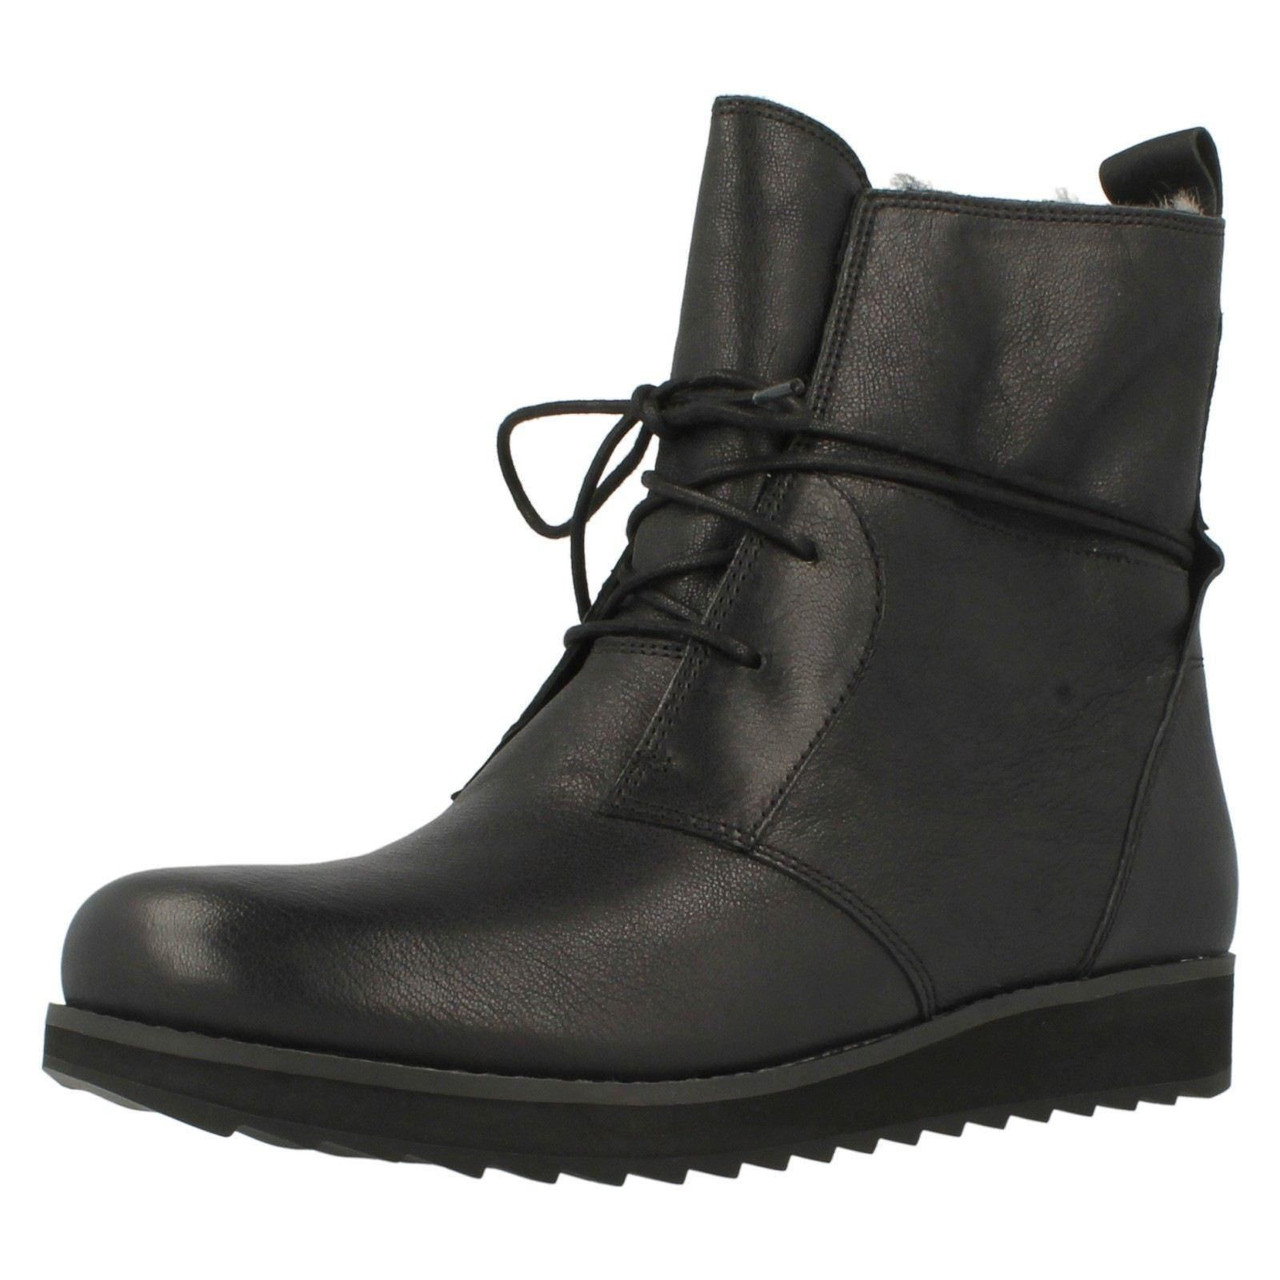 Ladies Clarks Lace Up Wedge Ankle Boots